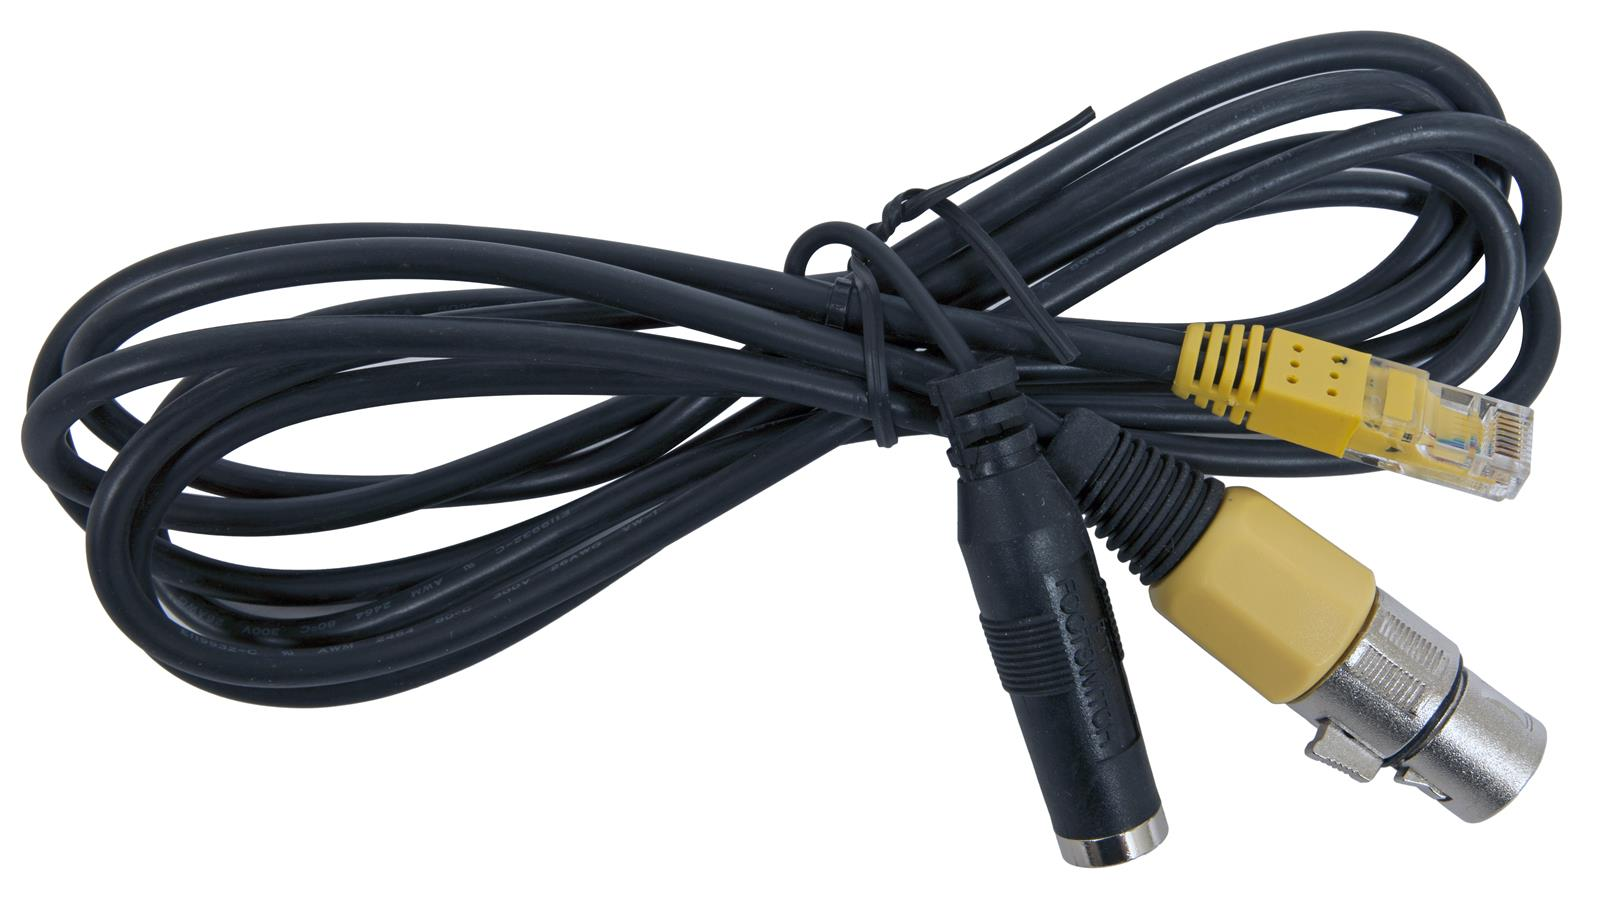 heil sound microphone adapter cables cc-1-xlr-ym - free shipping on most  orders over $99 at dx engineering